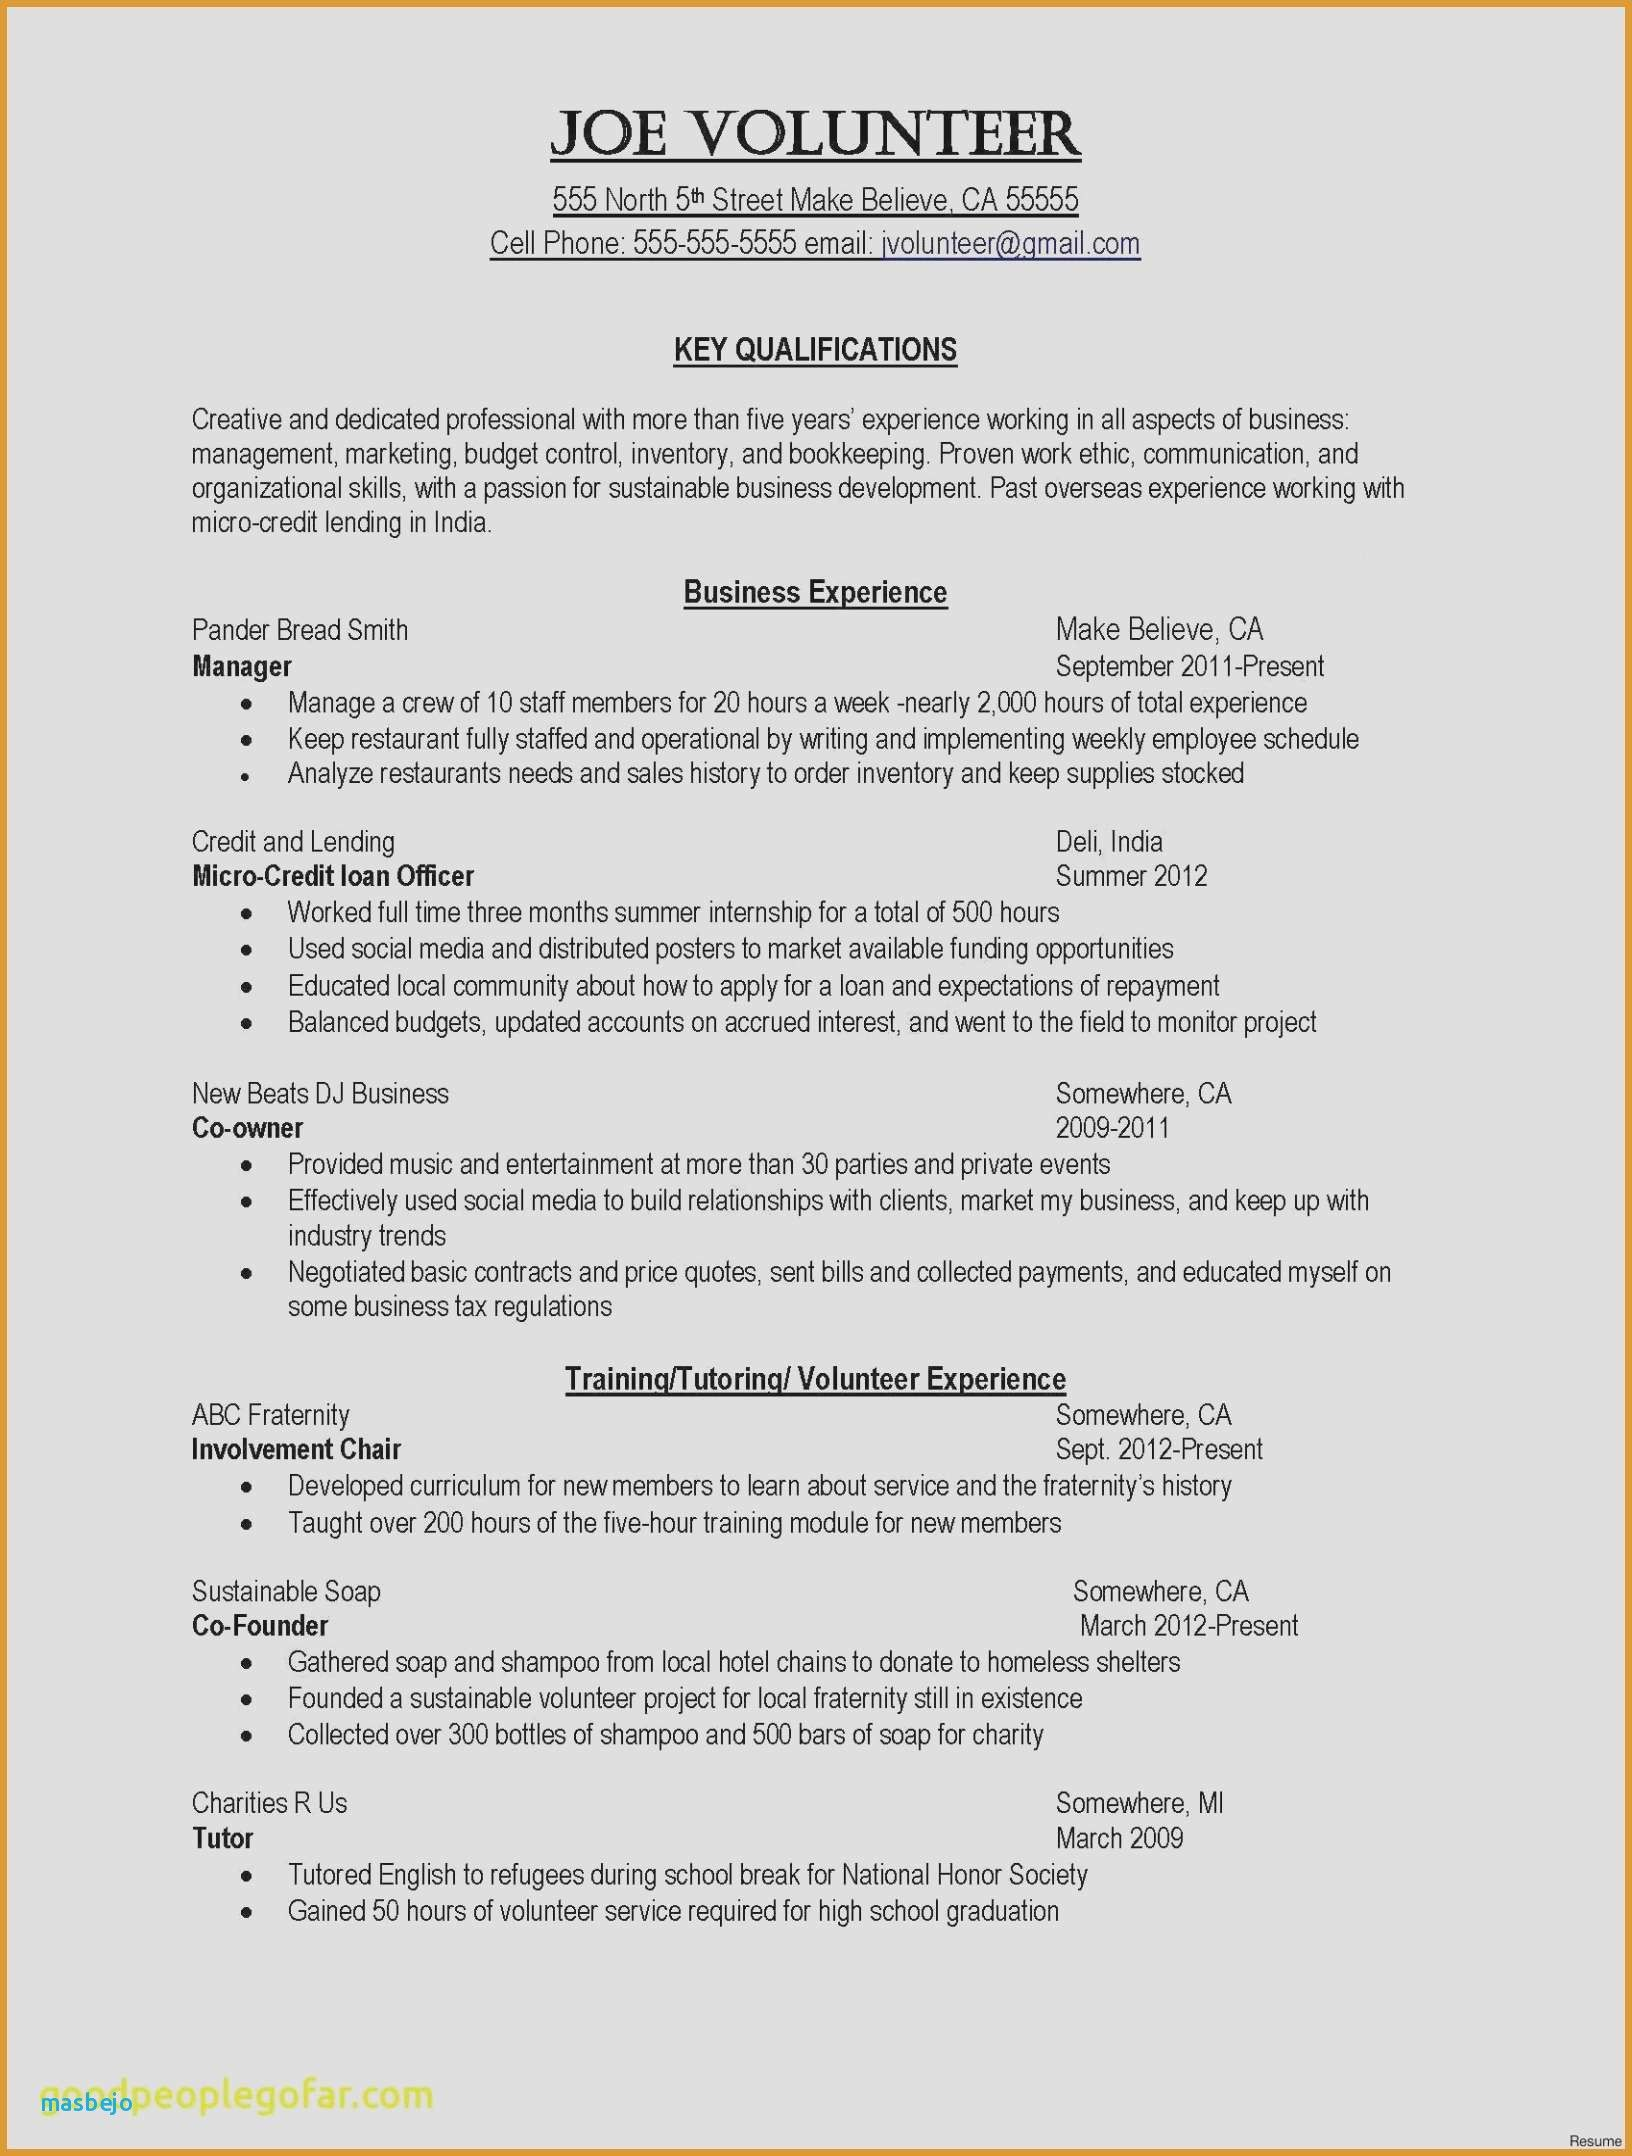 So as to be noticed, a resume letter is important. The very ...